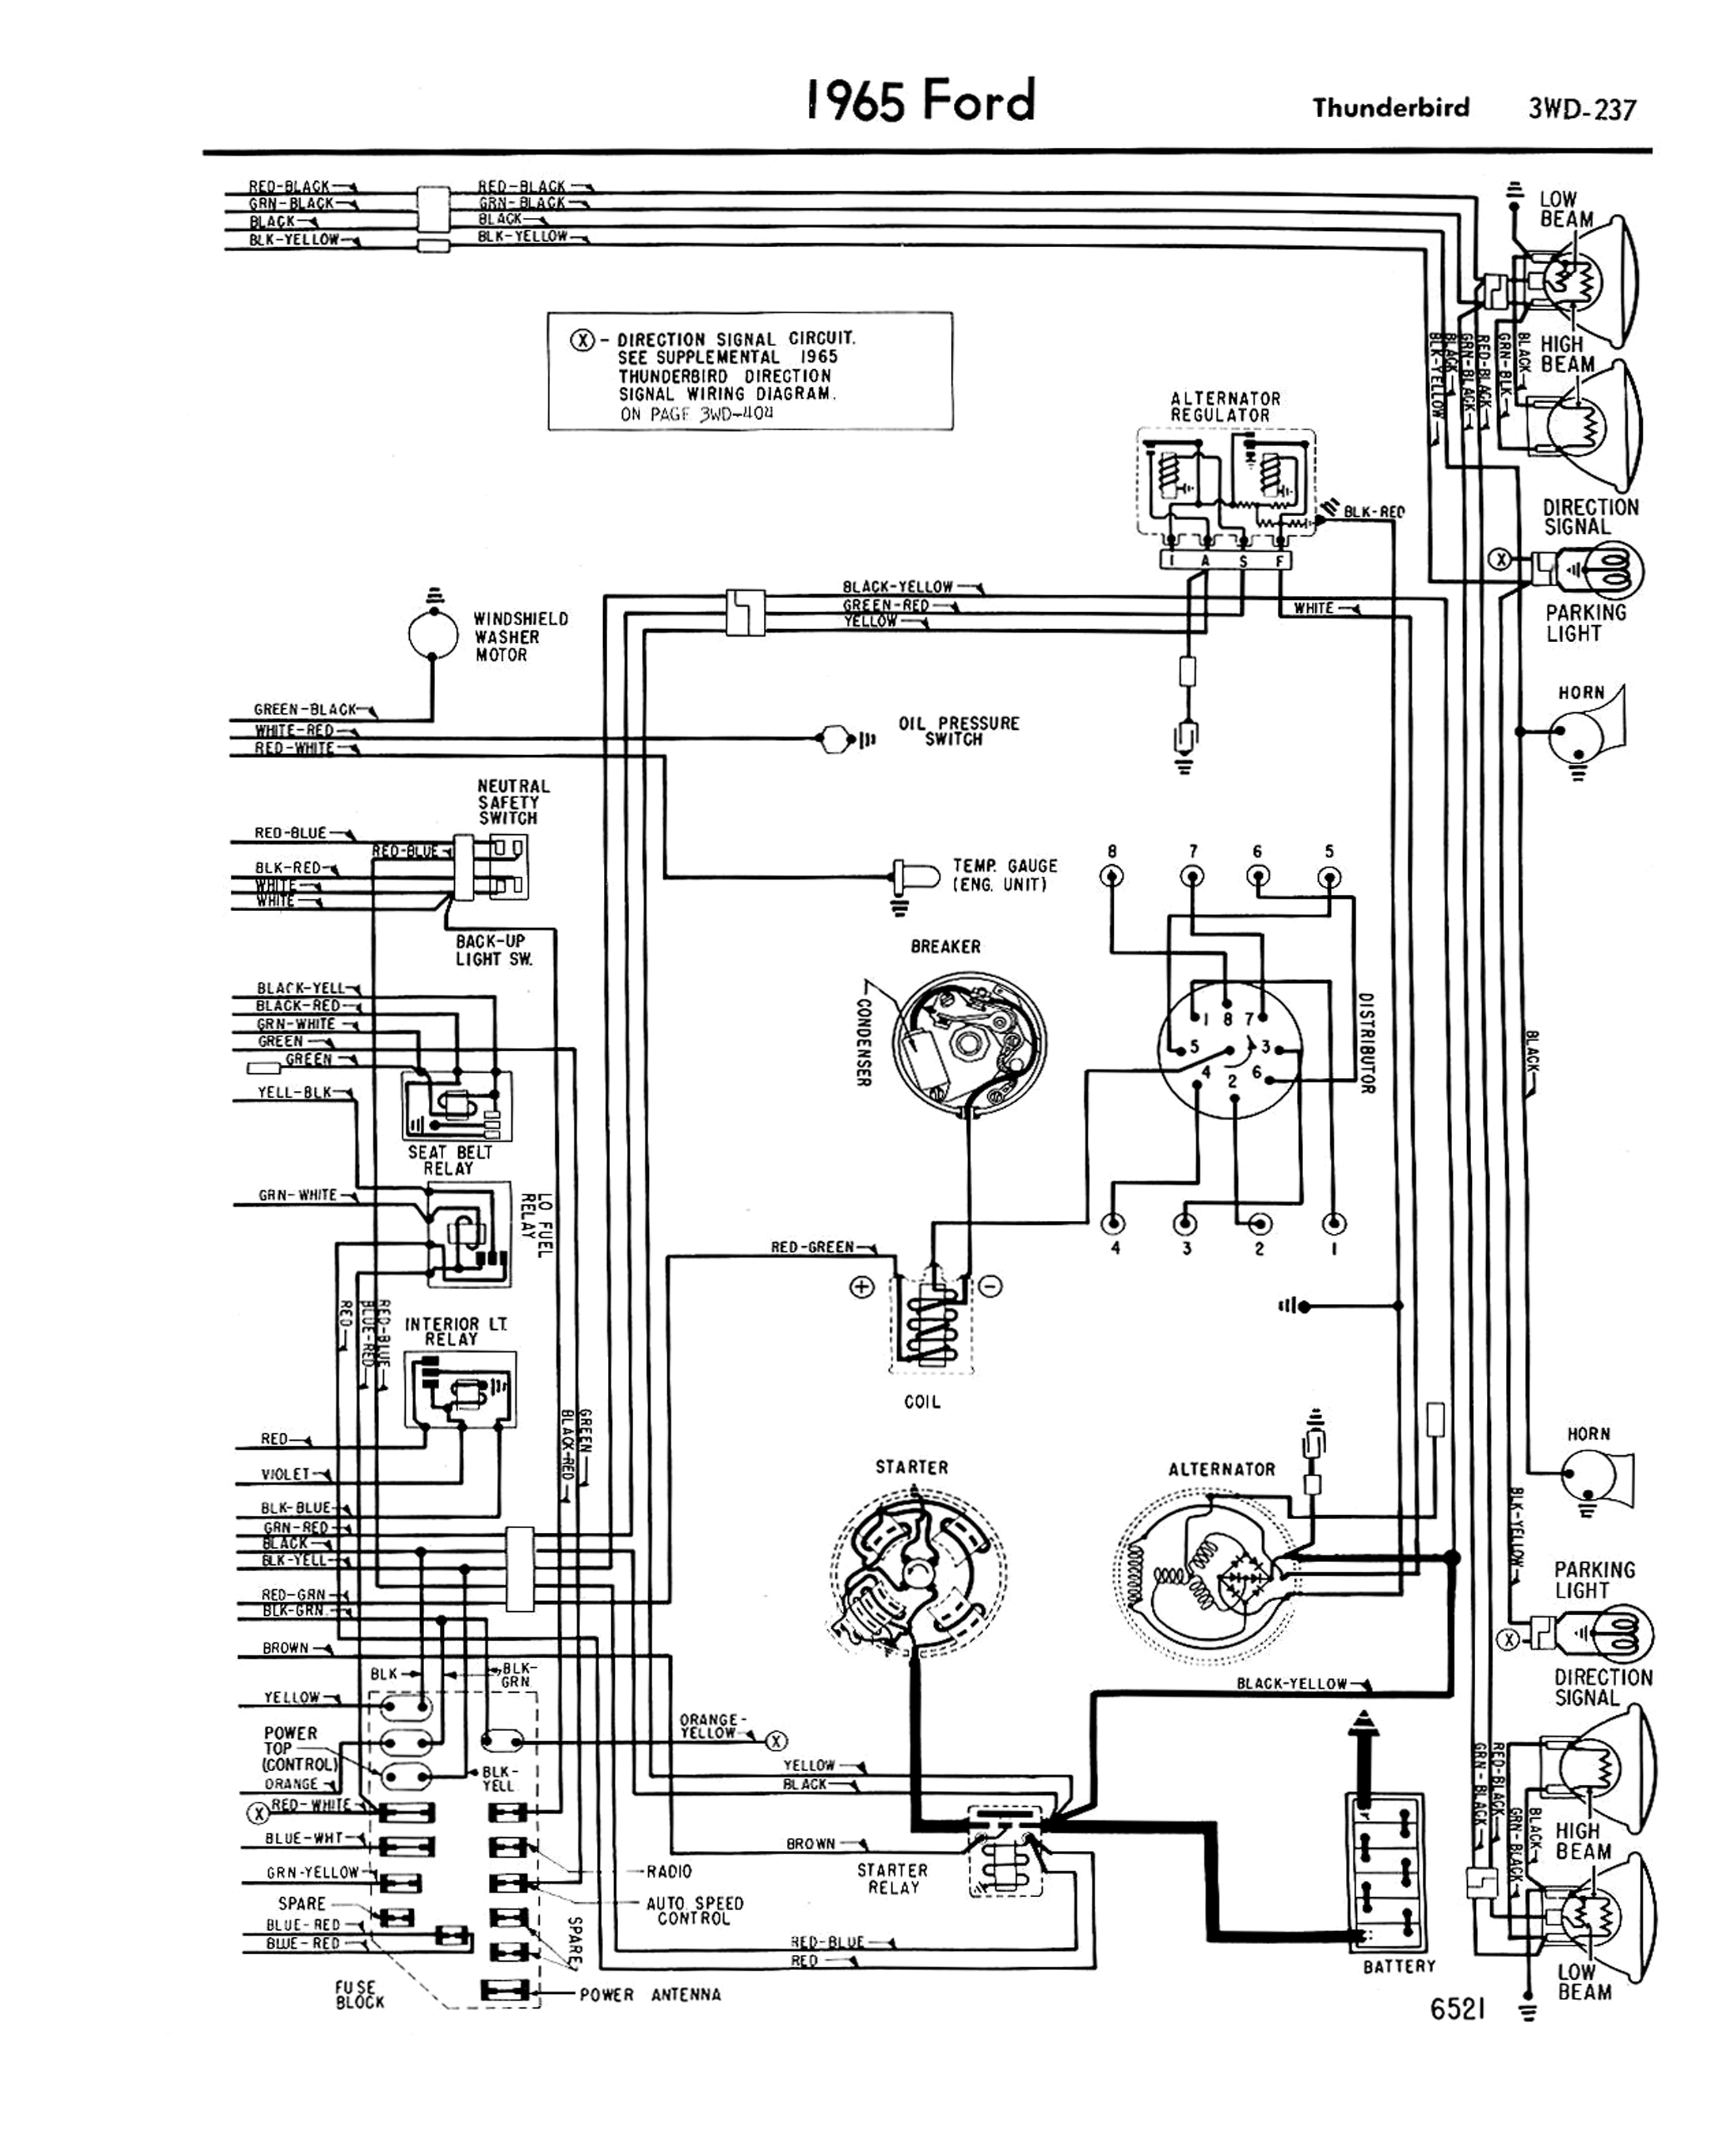 2000 Mercury Cougar Wiring Diagram from i1.wp.com